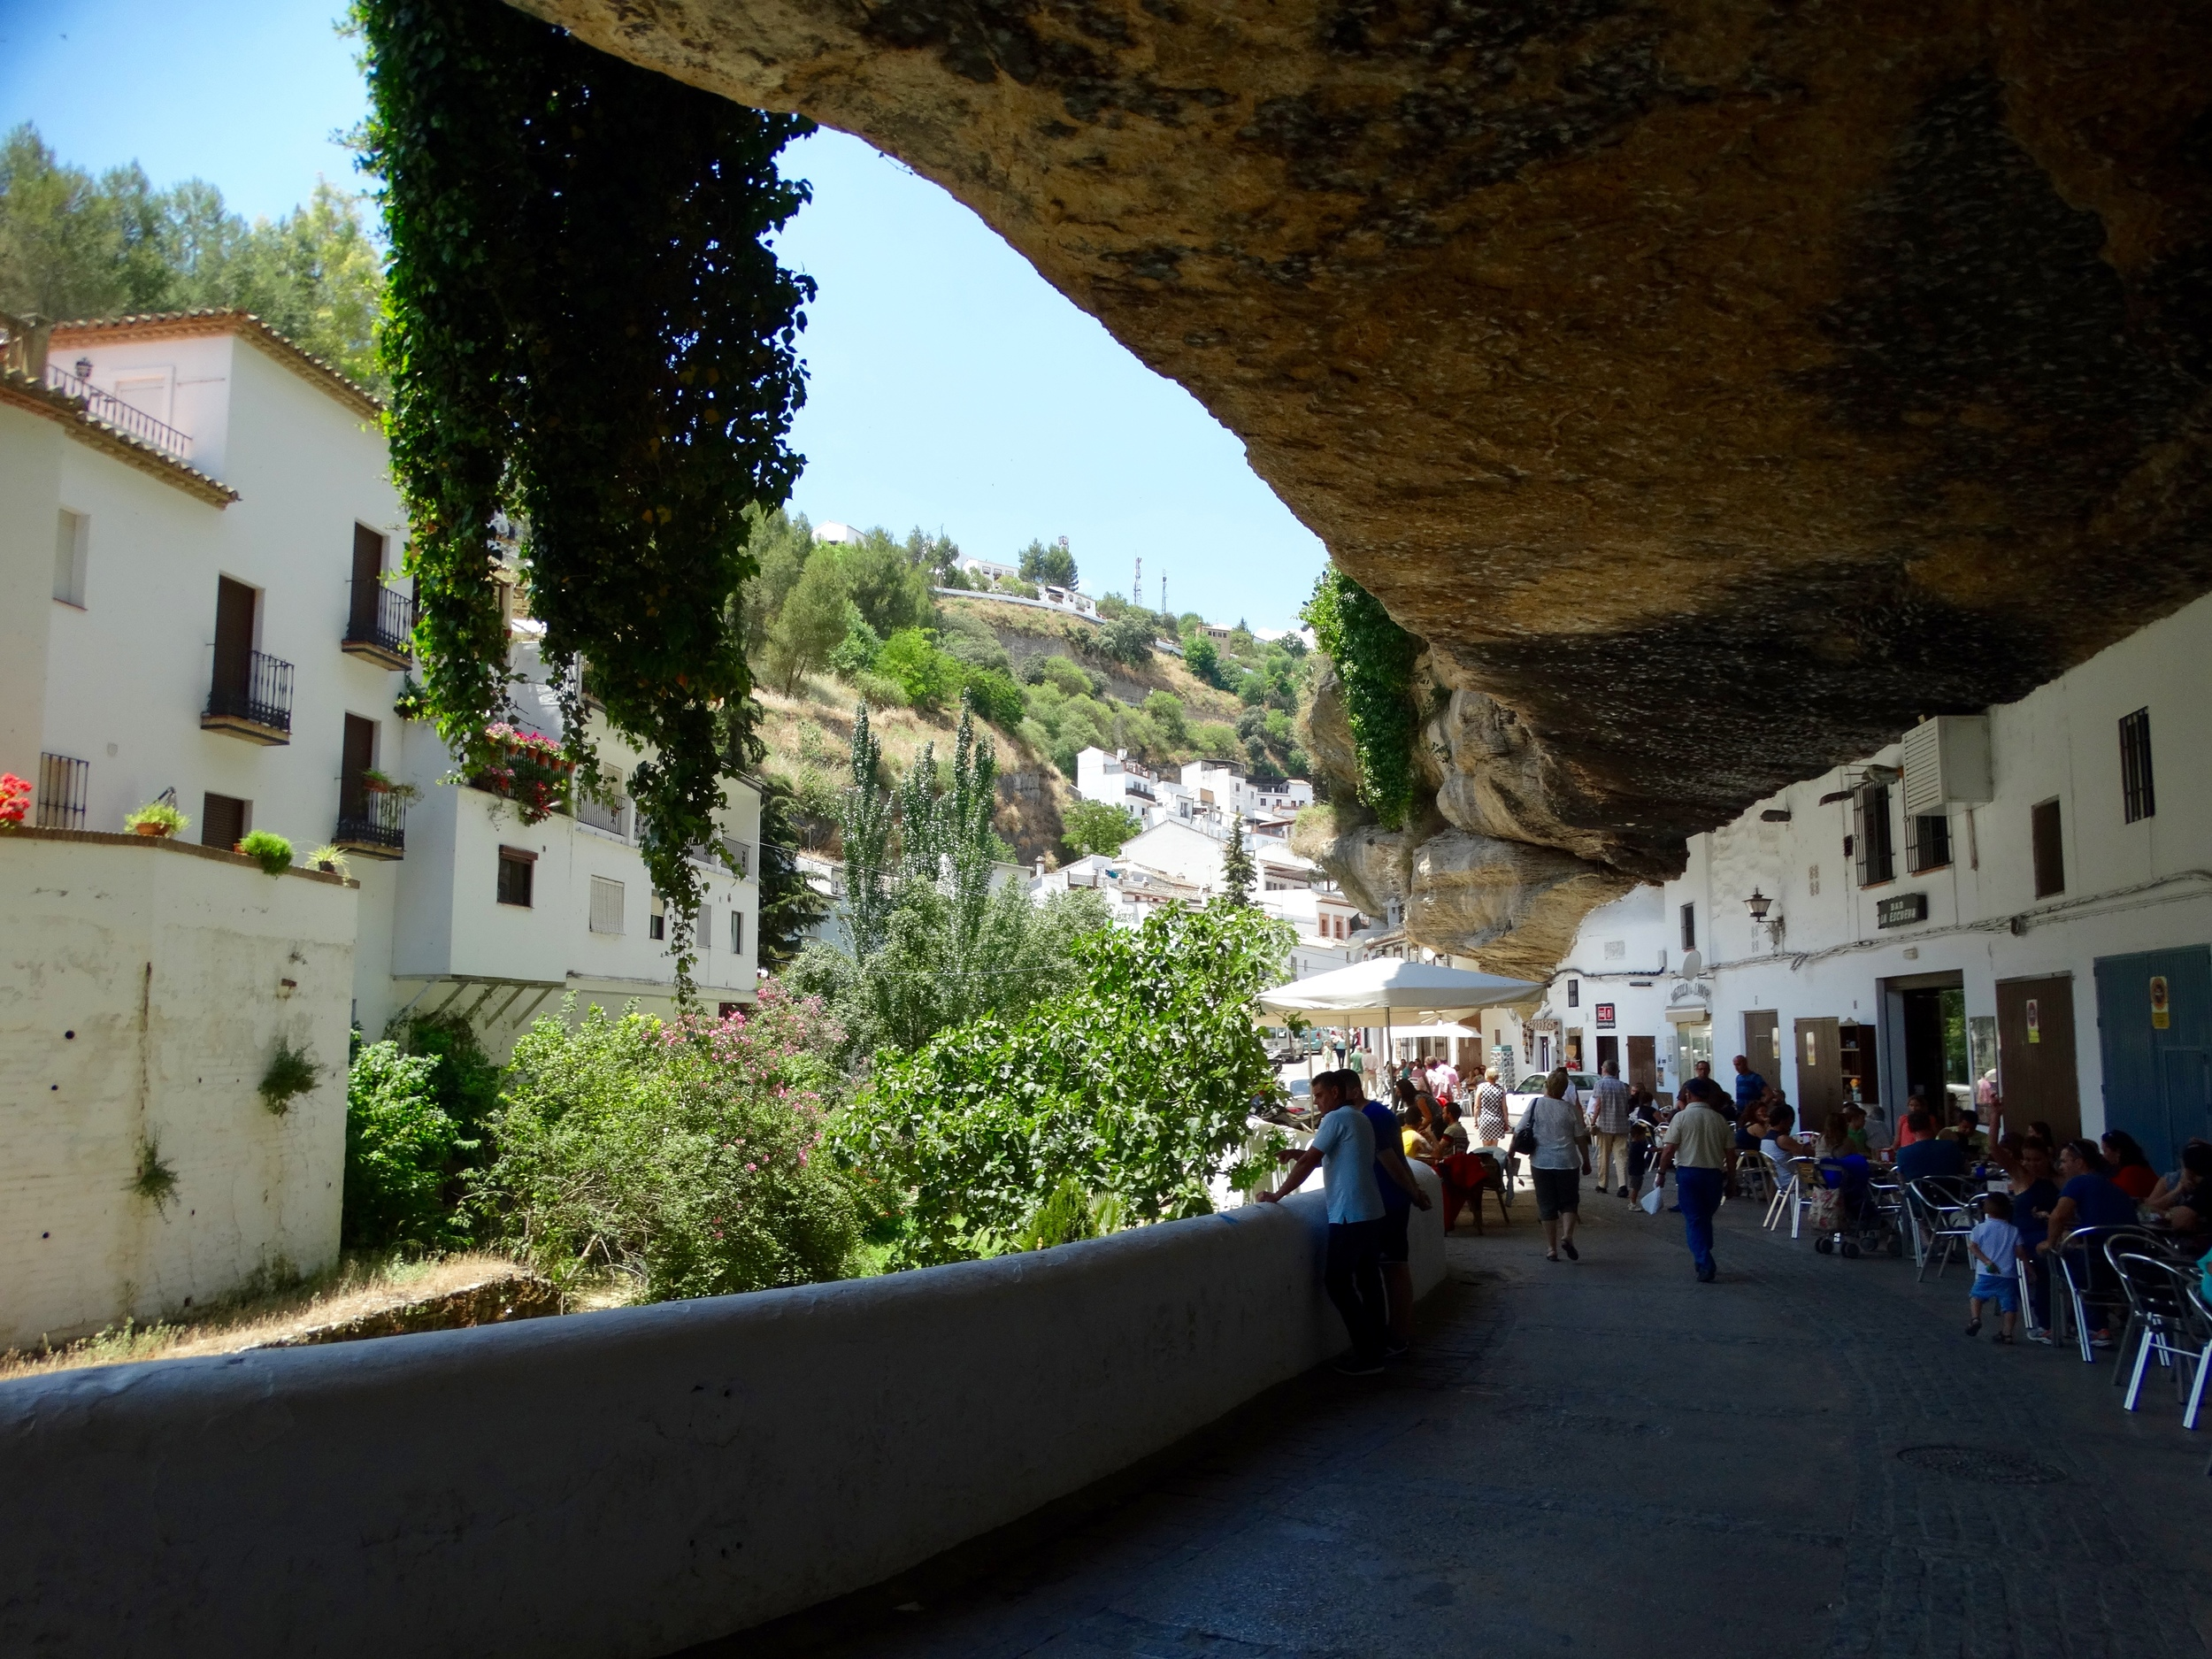 The quirky Setenil streets